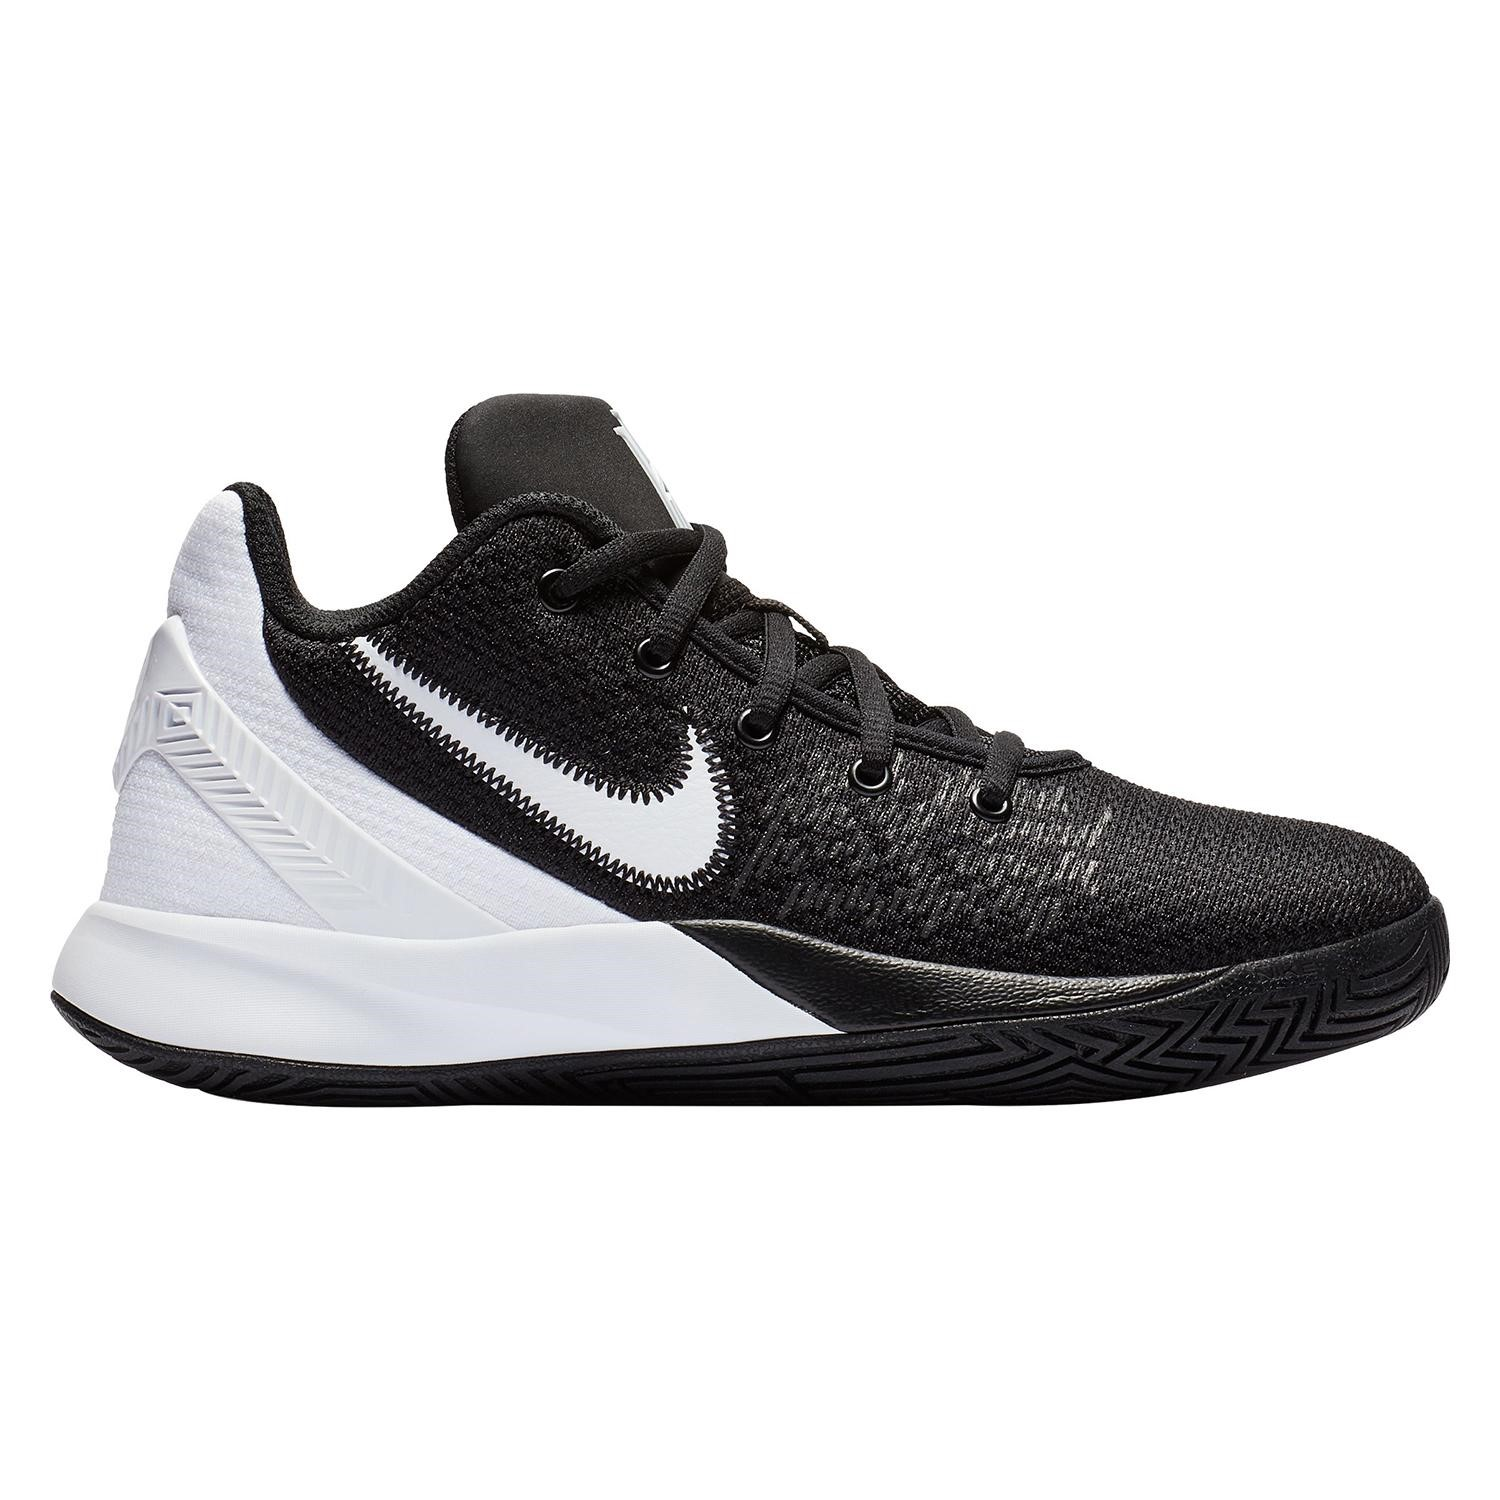 da35b135bf71 Nike Kyrie Flytrap II GS - Kids Basketball Shoes - Black White ...